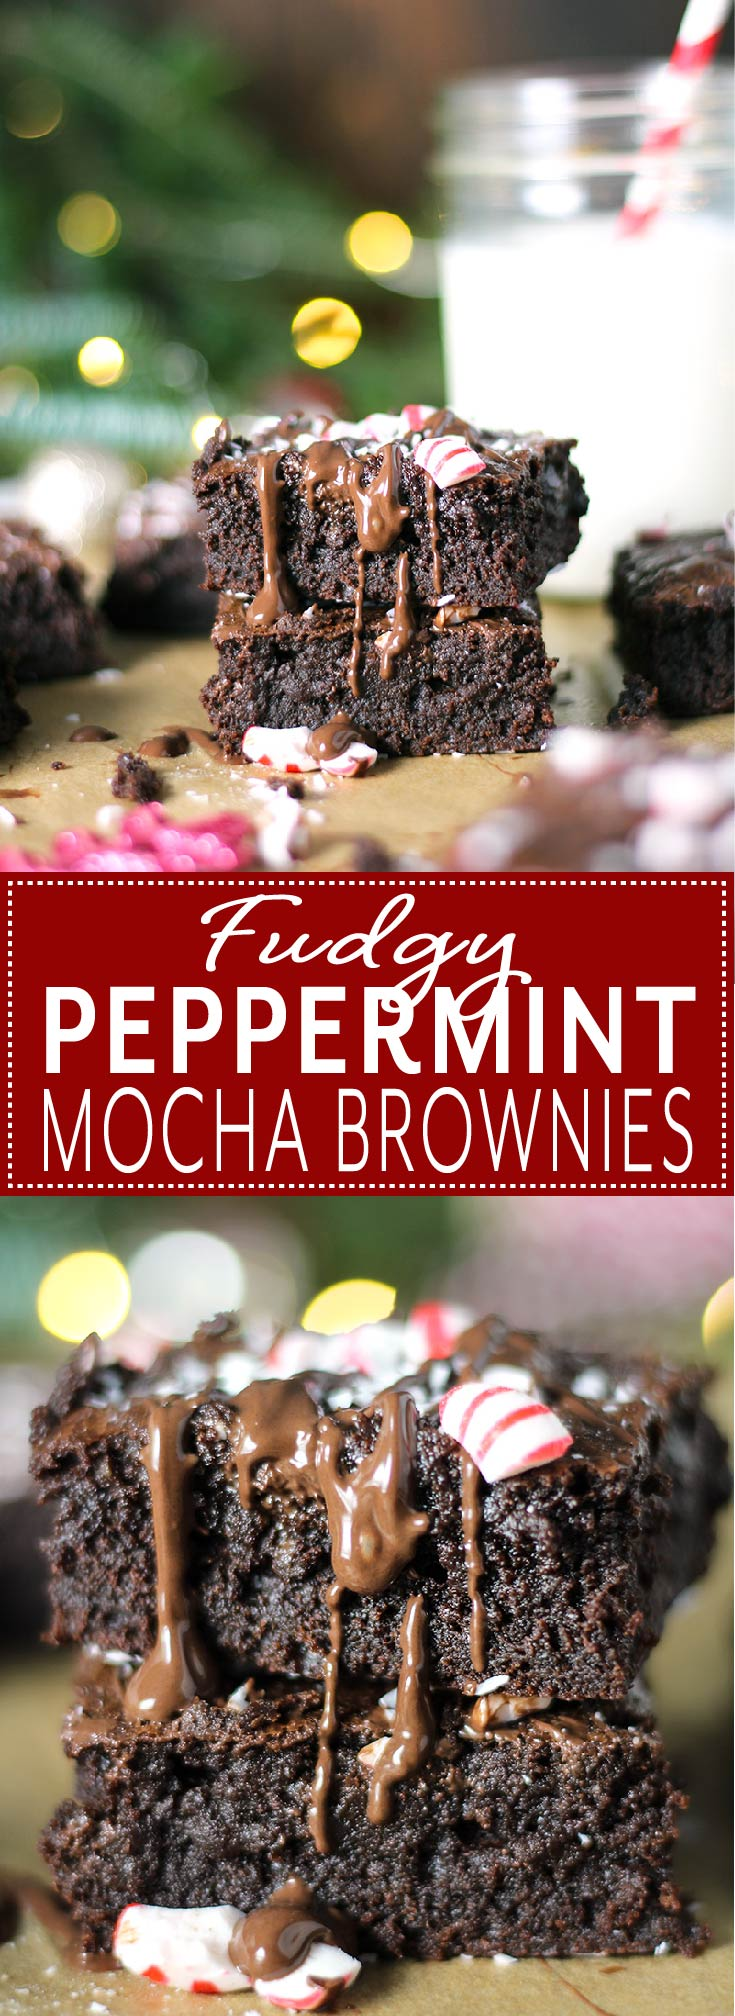 Fudgy Peppermint Mocha Brownies are the ultimate holiday treat! Rich and fudgy brownies infused with peppermint and espresso, drizzled with dark chocolate, and sprinkled with crushed peppermint candies.